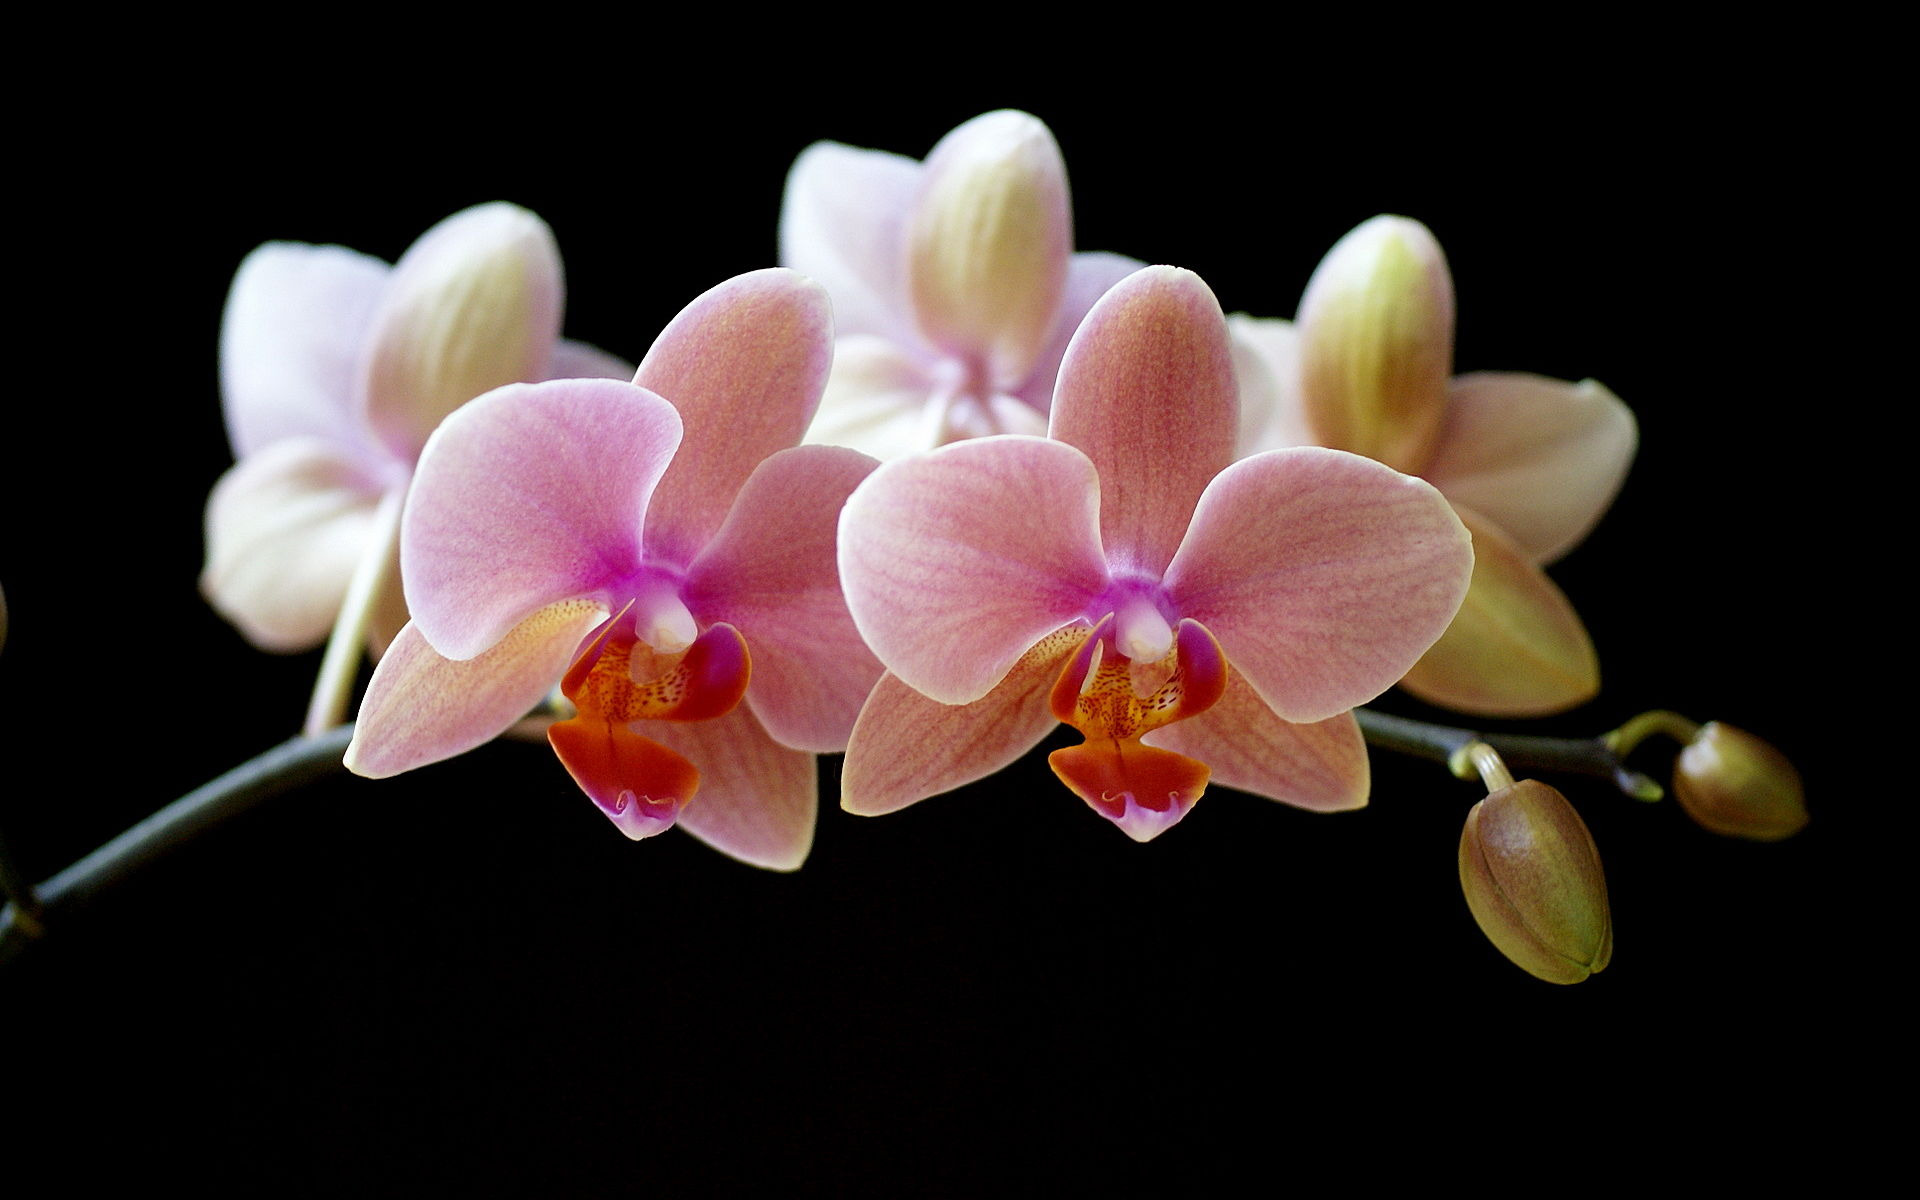 orchid wallpapers backgrounds images - photo #43